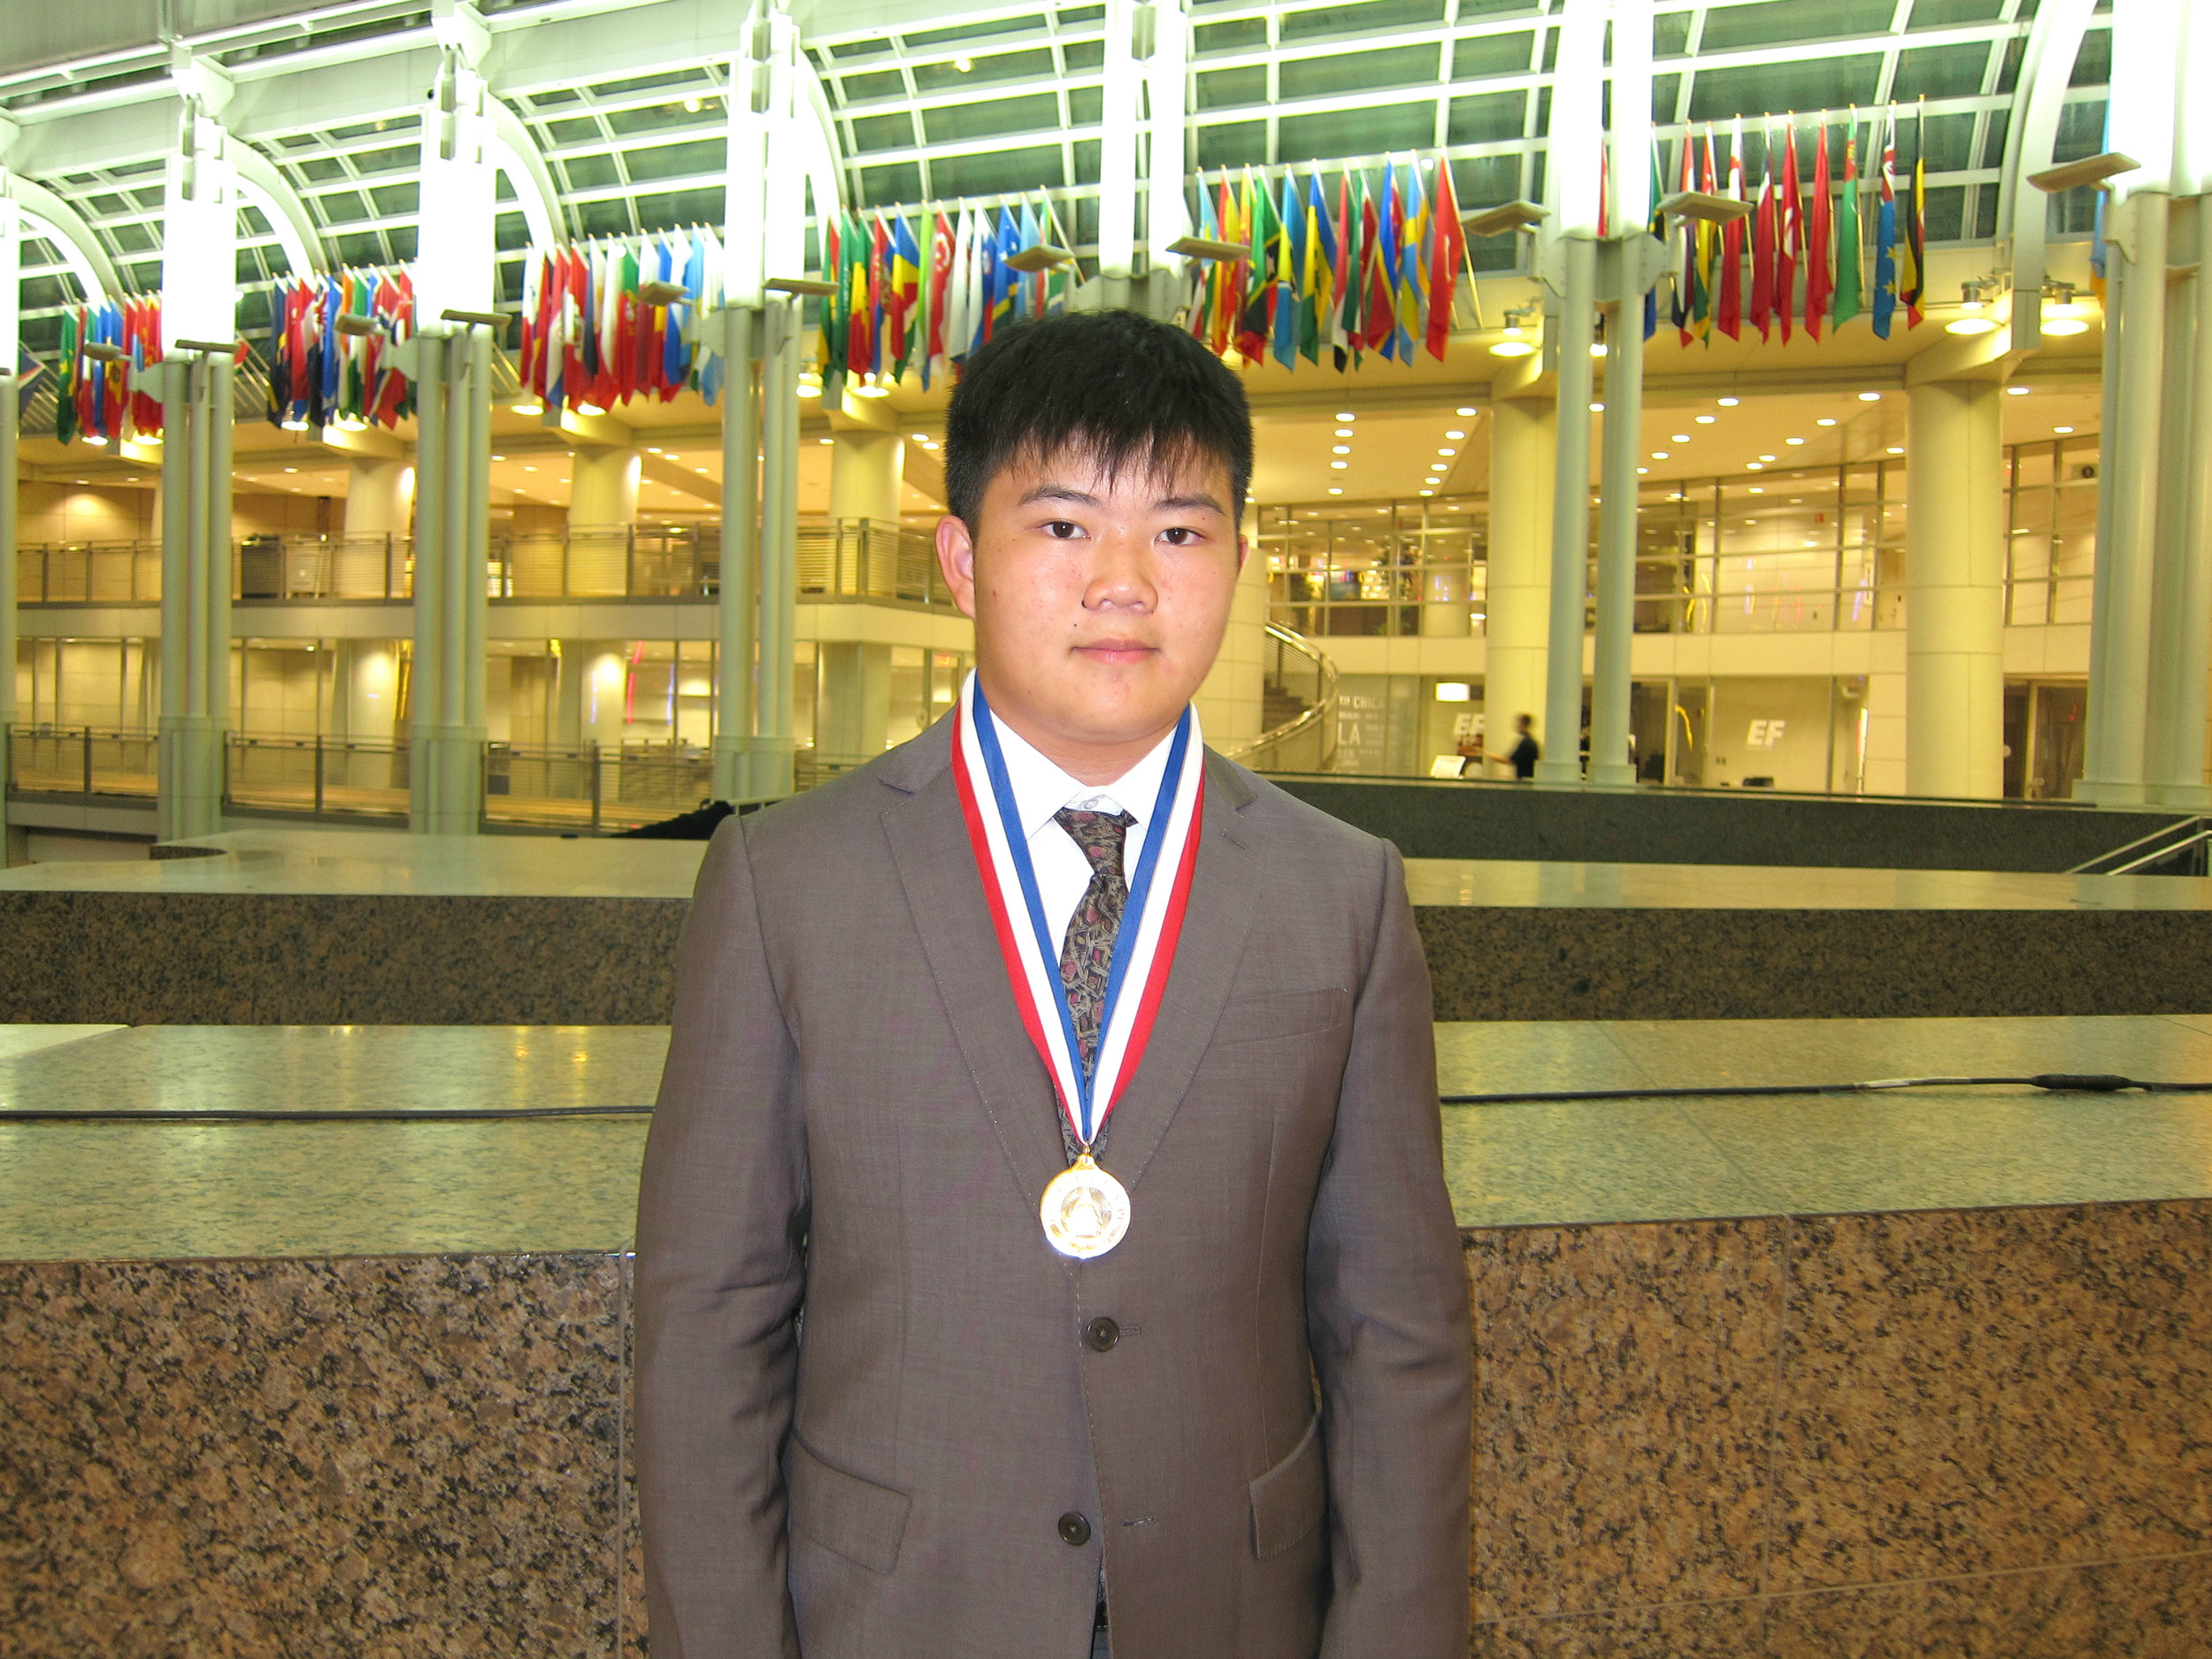 Terence Lee, 2016 Congressional Award Gold Medalist attending recognition dinner at Ronald Reagan Building and International Trade Center